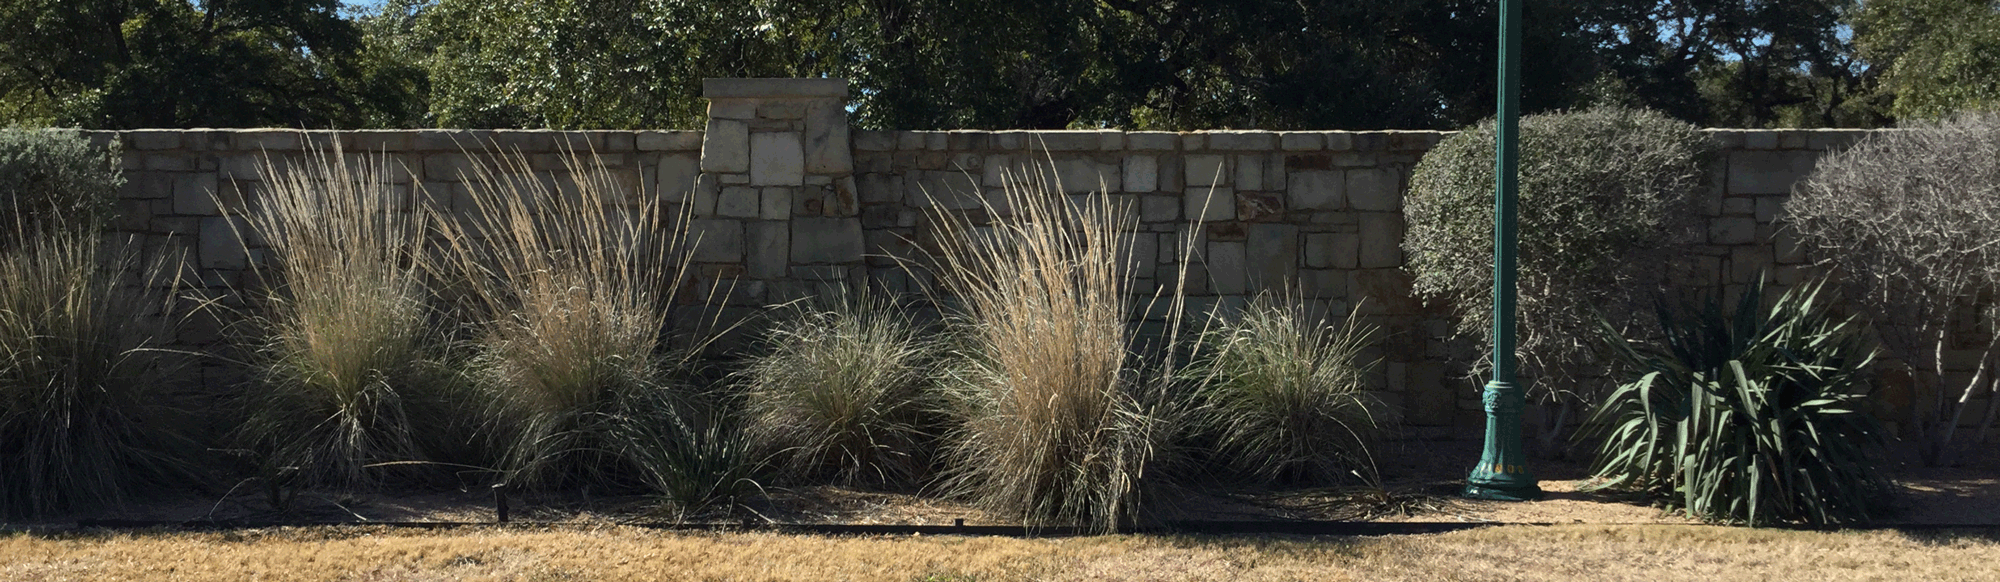 Commercial Lawn Maintenance Example in Georgetown TX